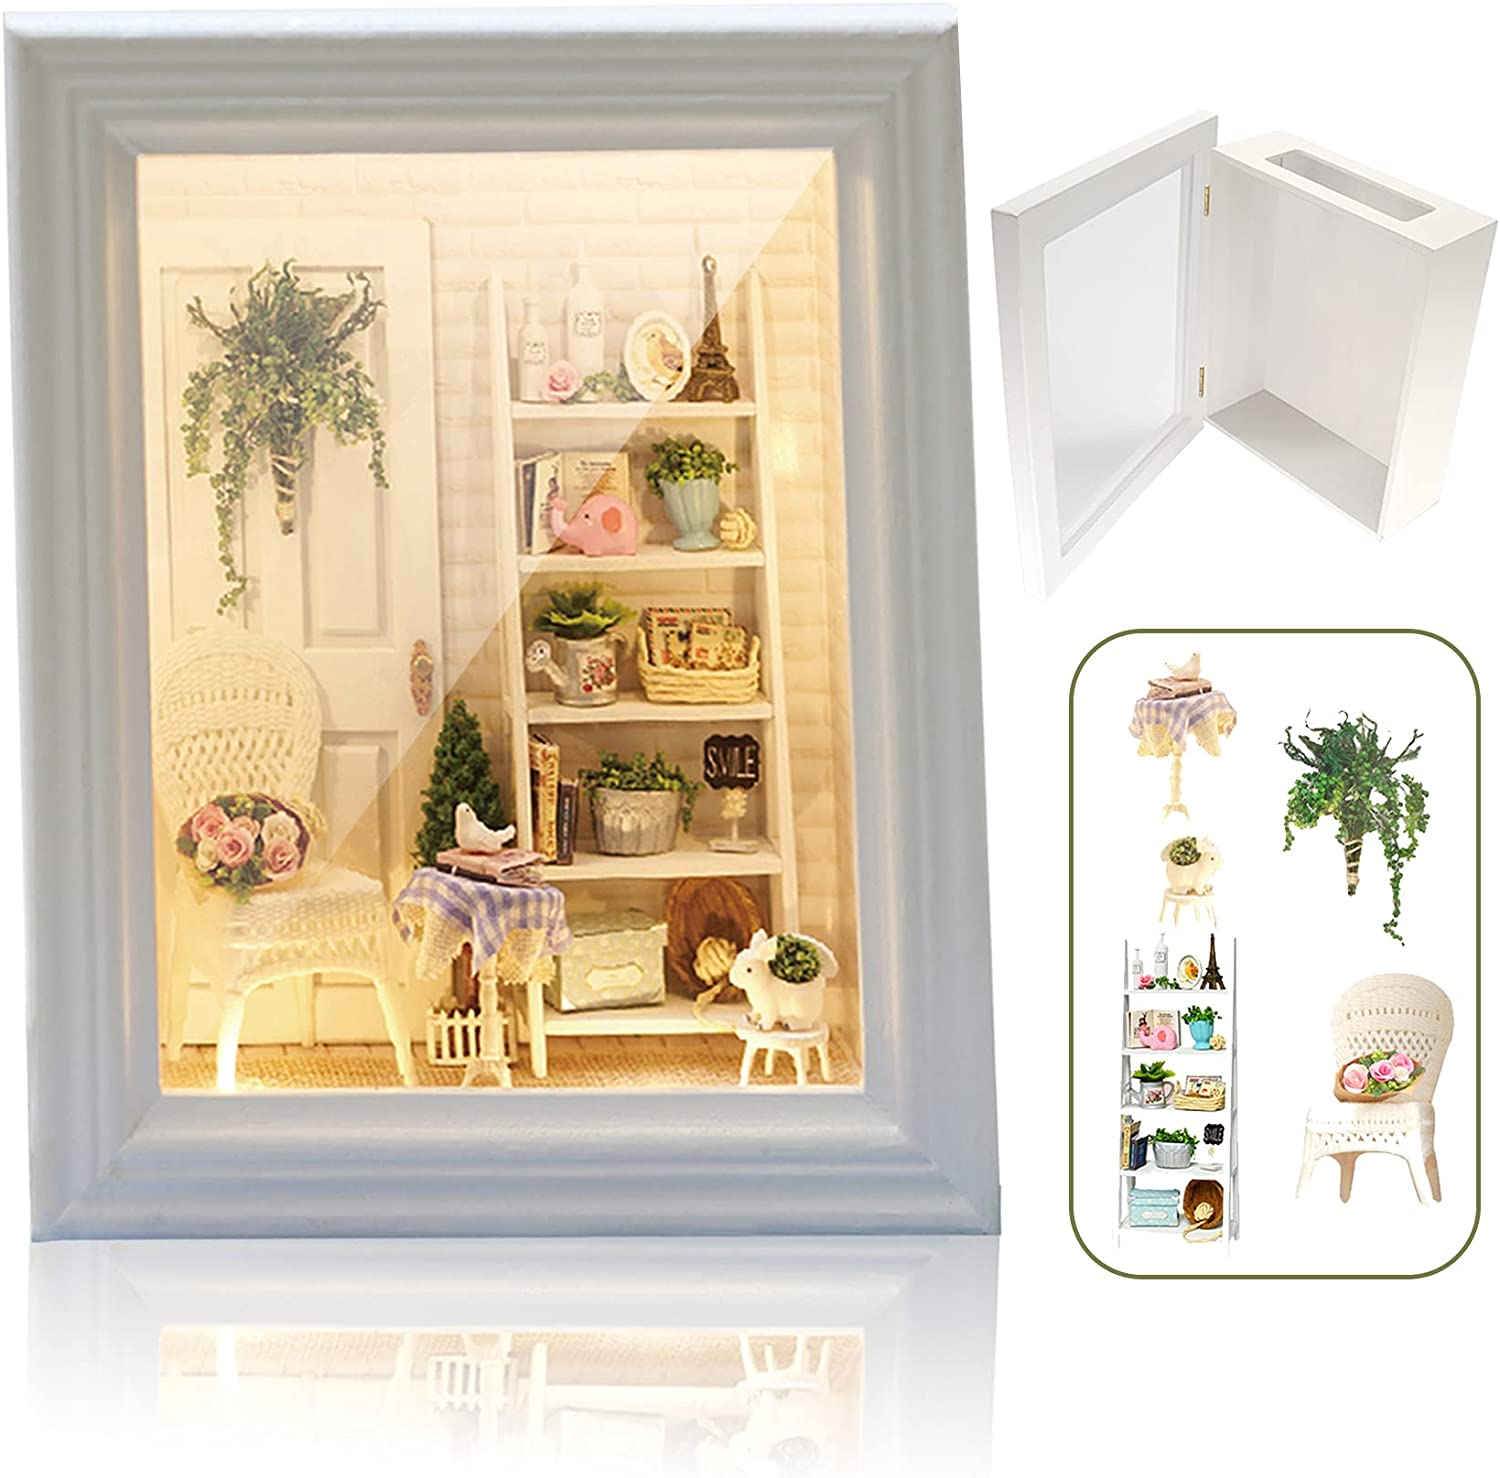 Luceinvita Shadow Box Cheap super special price Frame Photo Memory Miniature Challenge the lowest price of Japan Ki Decoration